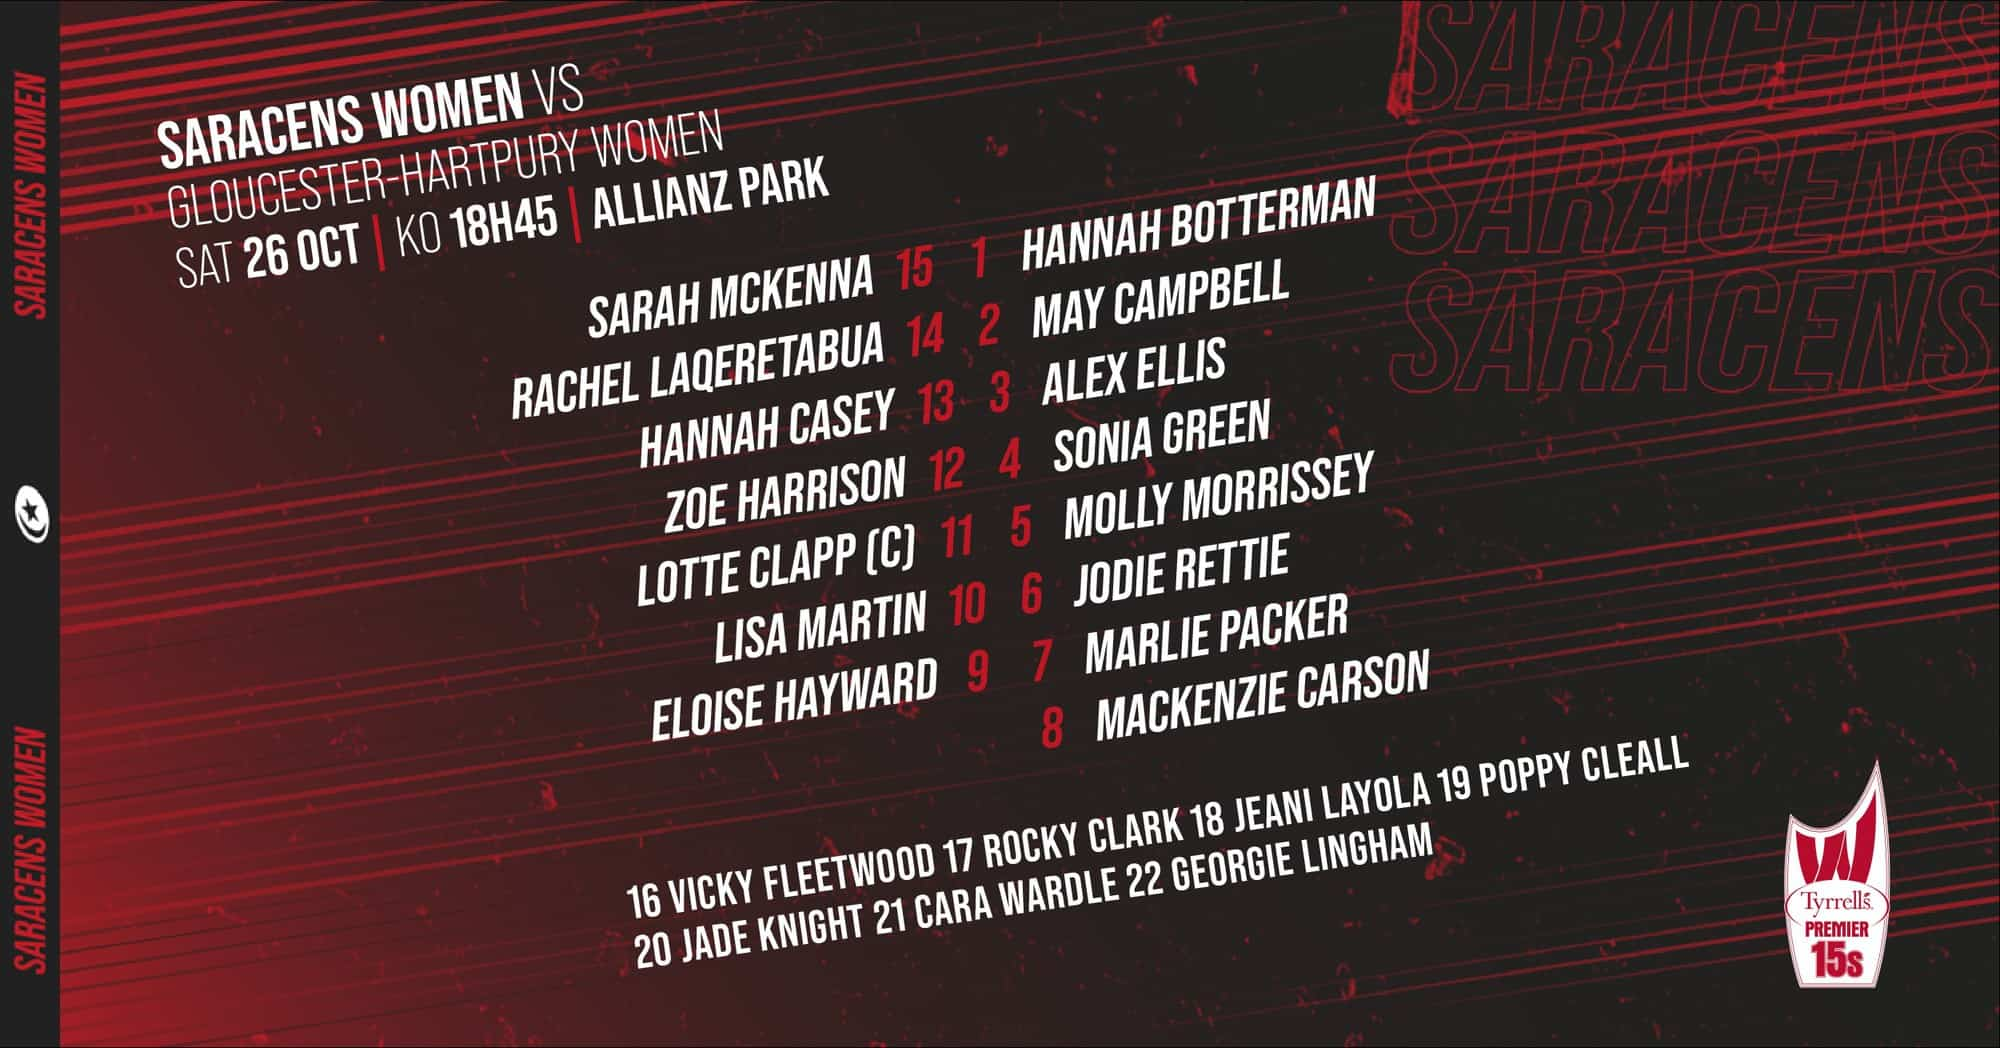 Match Day Squad Gloucester-Hartpury Twitter-12